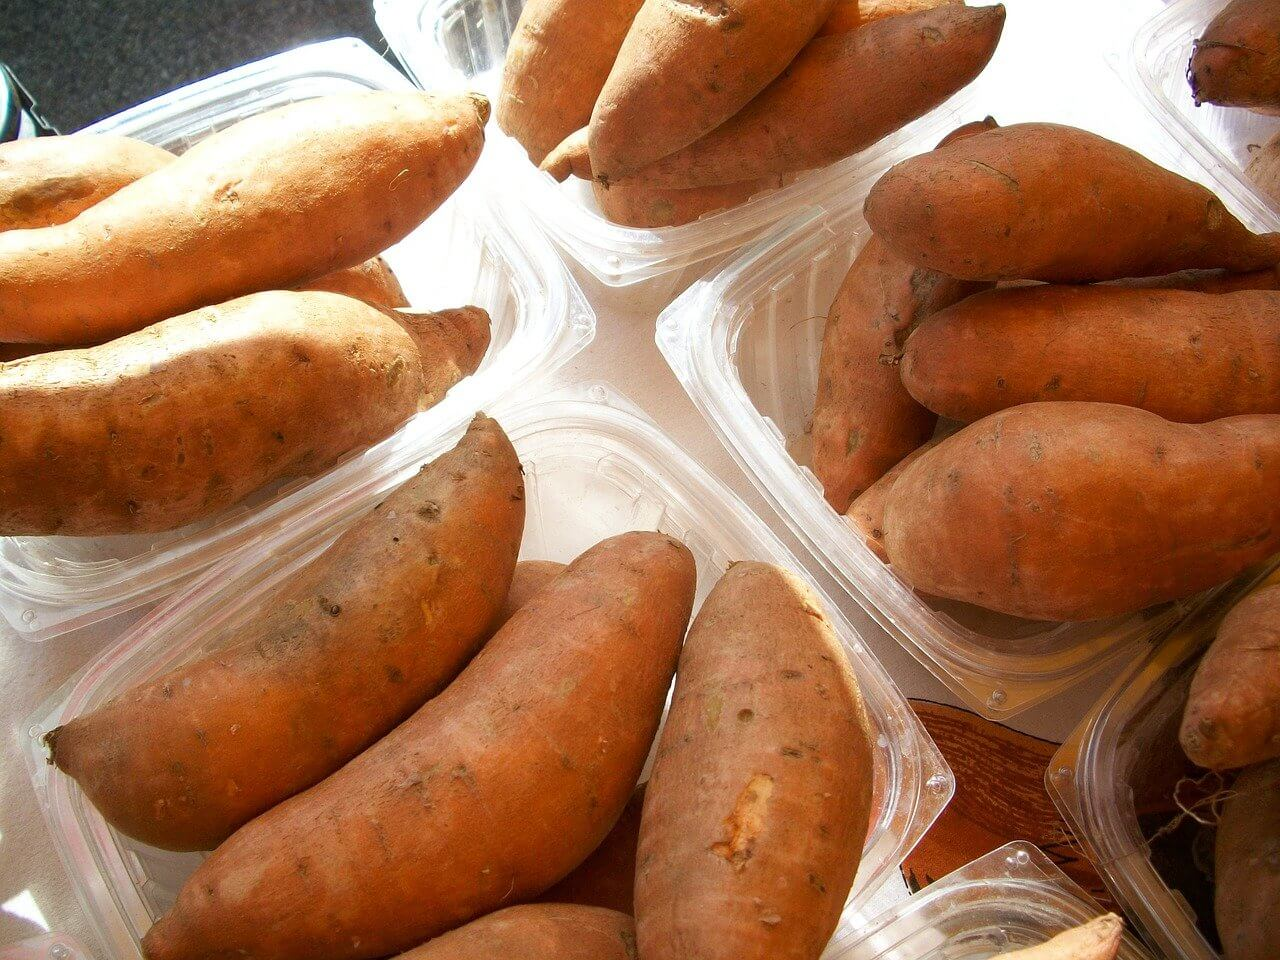 companion plants for sweet potatoes